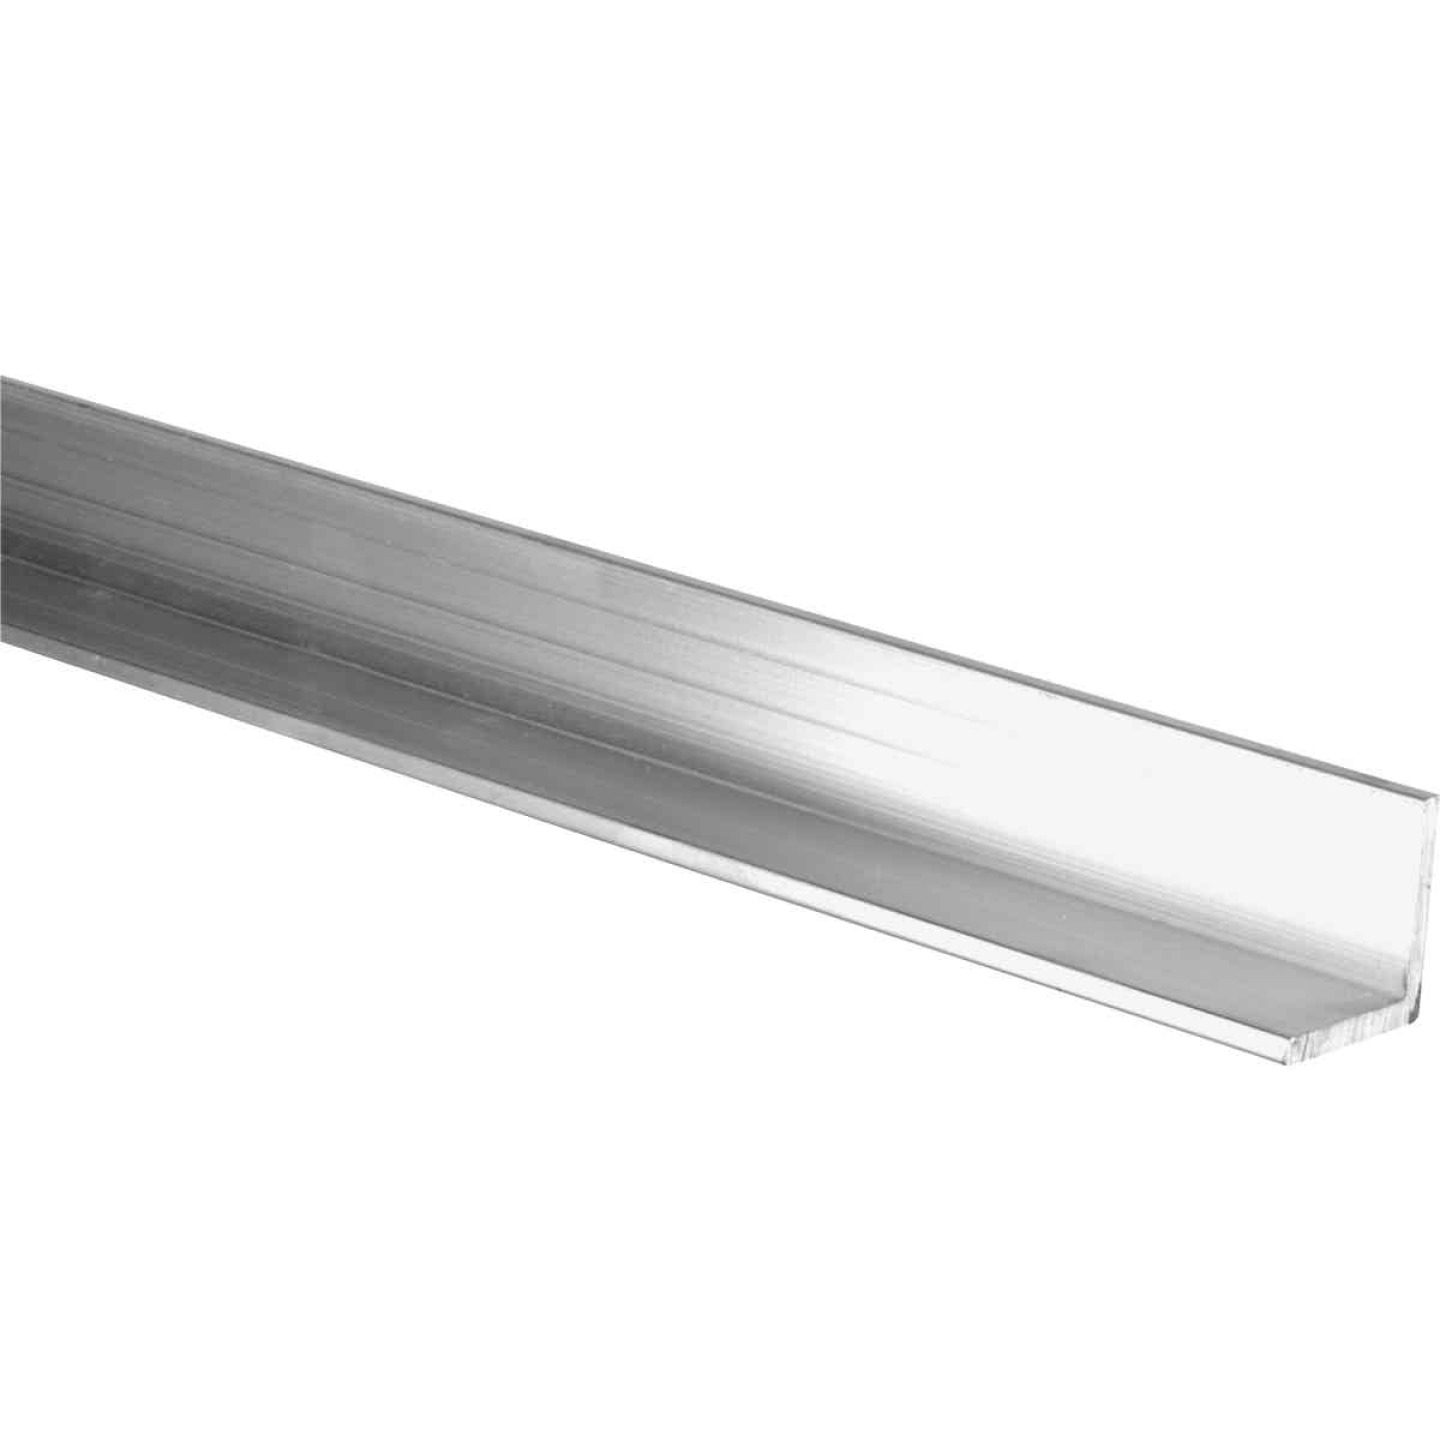 HILLMAN Steelworks Mill 3/4 In. x 3 Ft., 1/16 In. Aluminum Solid Angle Image 1